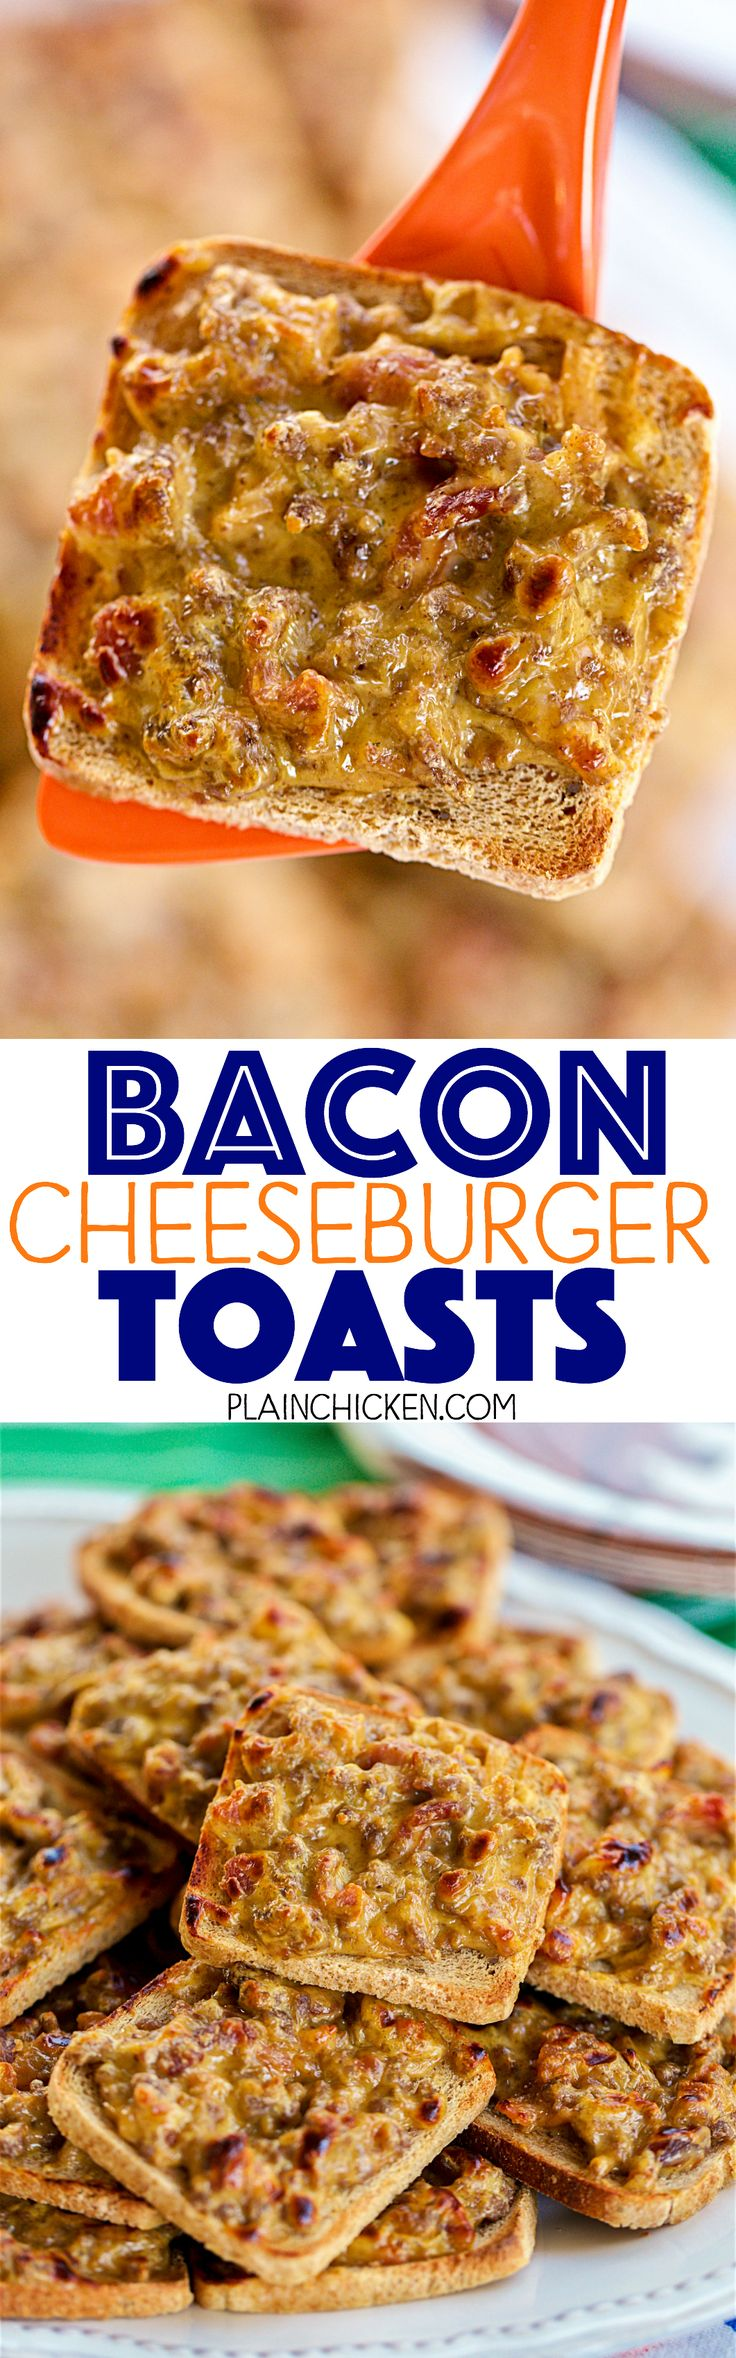 Bacon Cheeseburger Toasts - SO good!!! We love these for parties and a quick lunch or dinner. Only 5 ingredients and ready in minutes! Hamburger, bacon, worcestershire sauce and Velveeta cheese on top of party rye bread. YUM! Can make ahead and freeze for later. I always have a batch in the freezer. SO quick, easy and delicious!!! EVERYONE LOVES these!!!